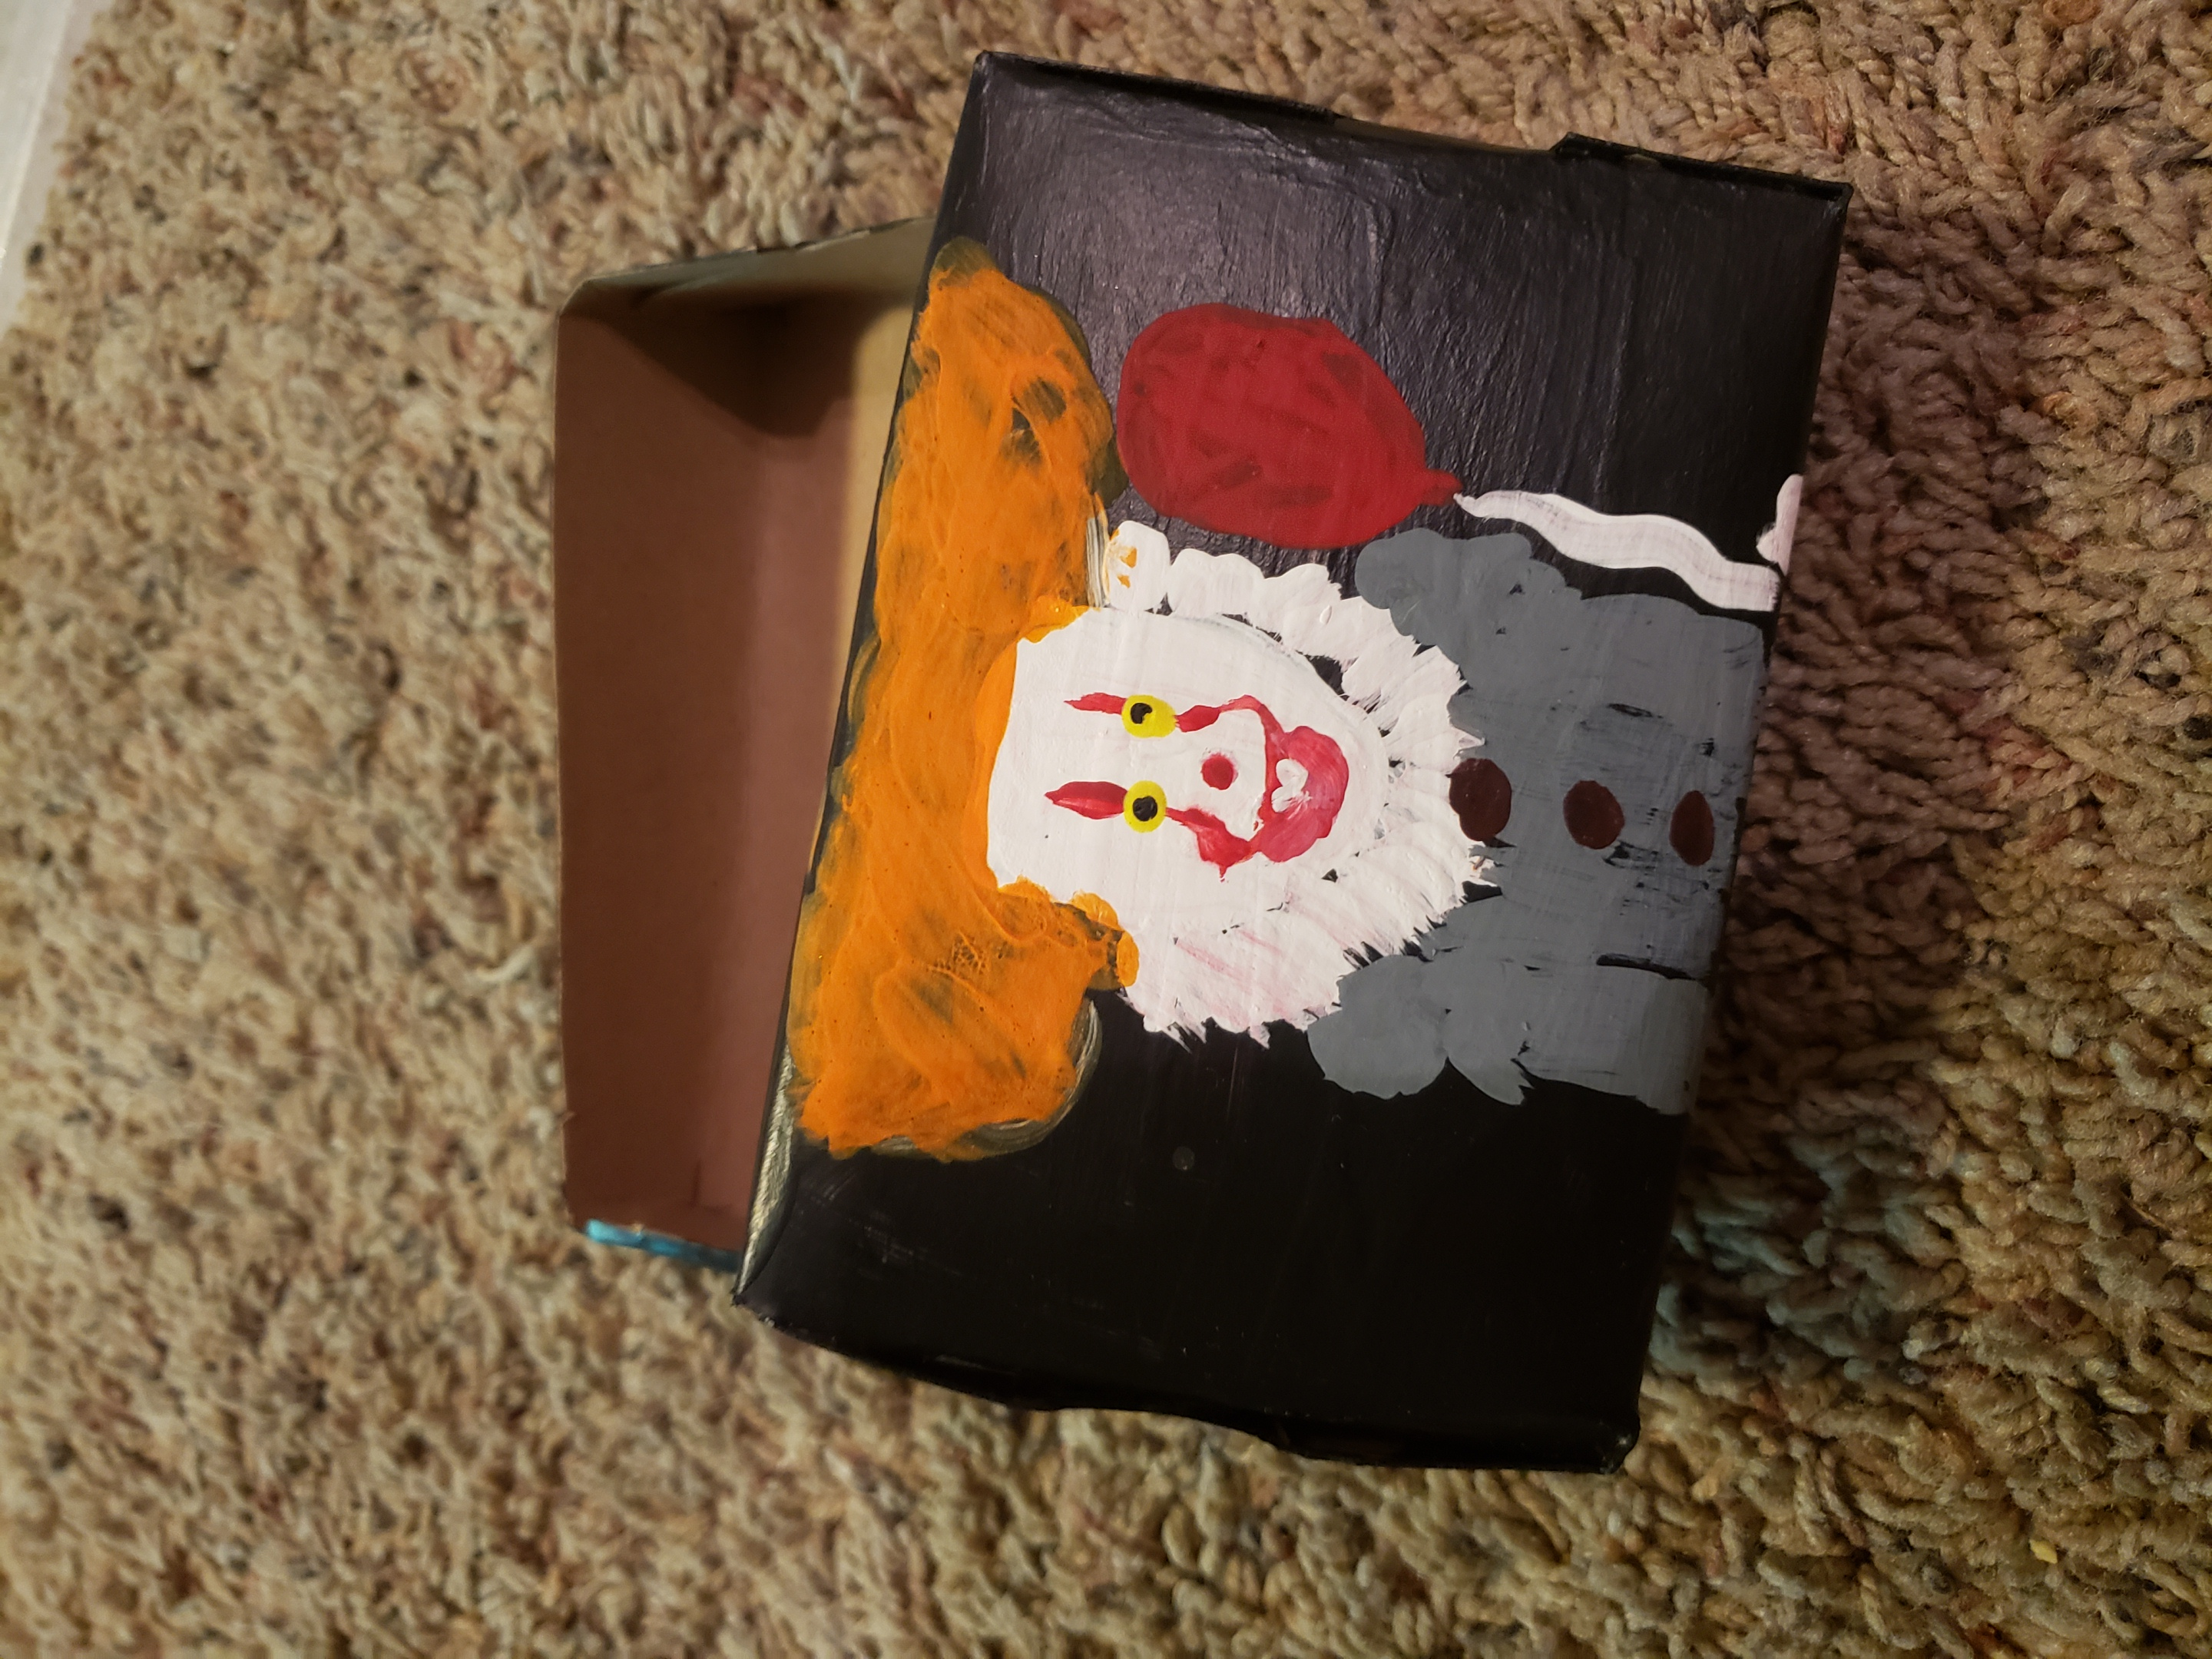 Pennywise Treasure Box by Audri McKenna